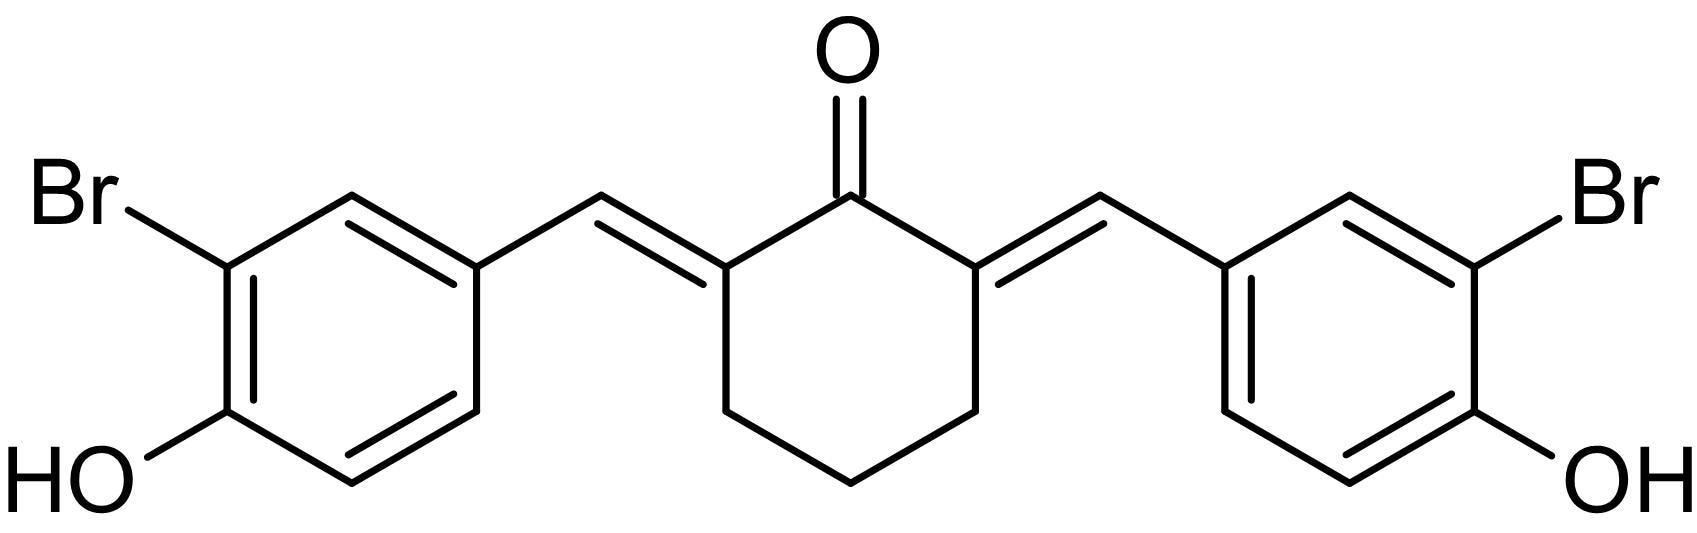 Chemical Structure - Histone Acetyltransferase Inhibitor II, p300/CBP HAT inhibitor (ab144556)